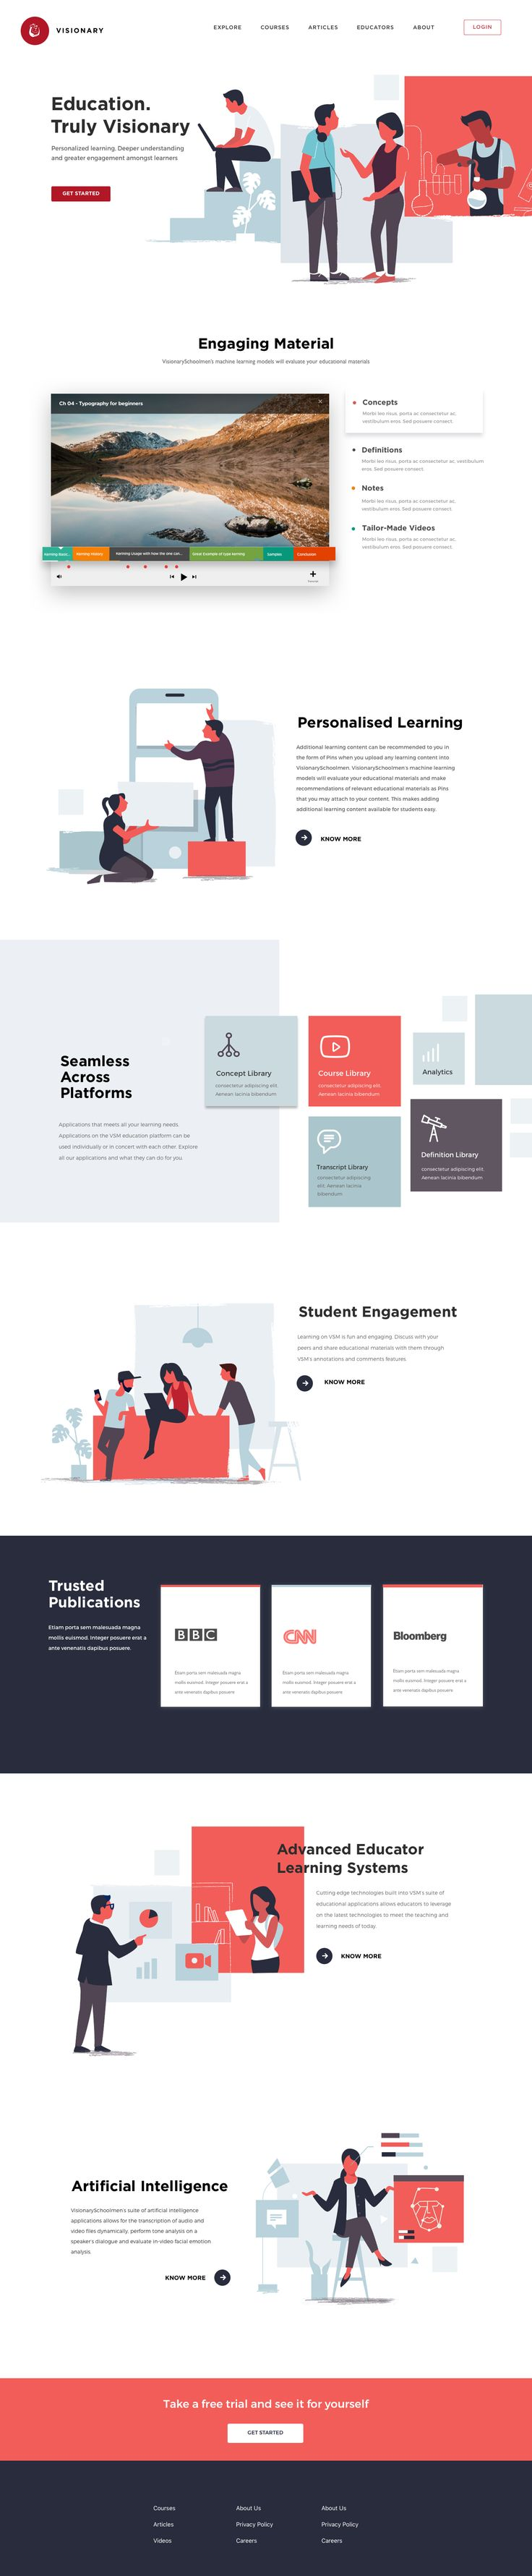 Dribbble visionary homepage detail